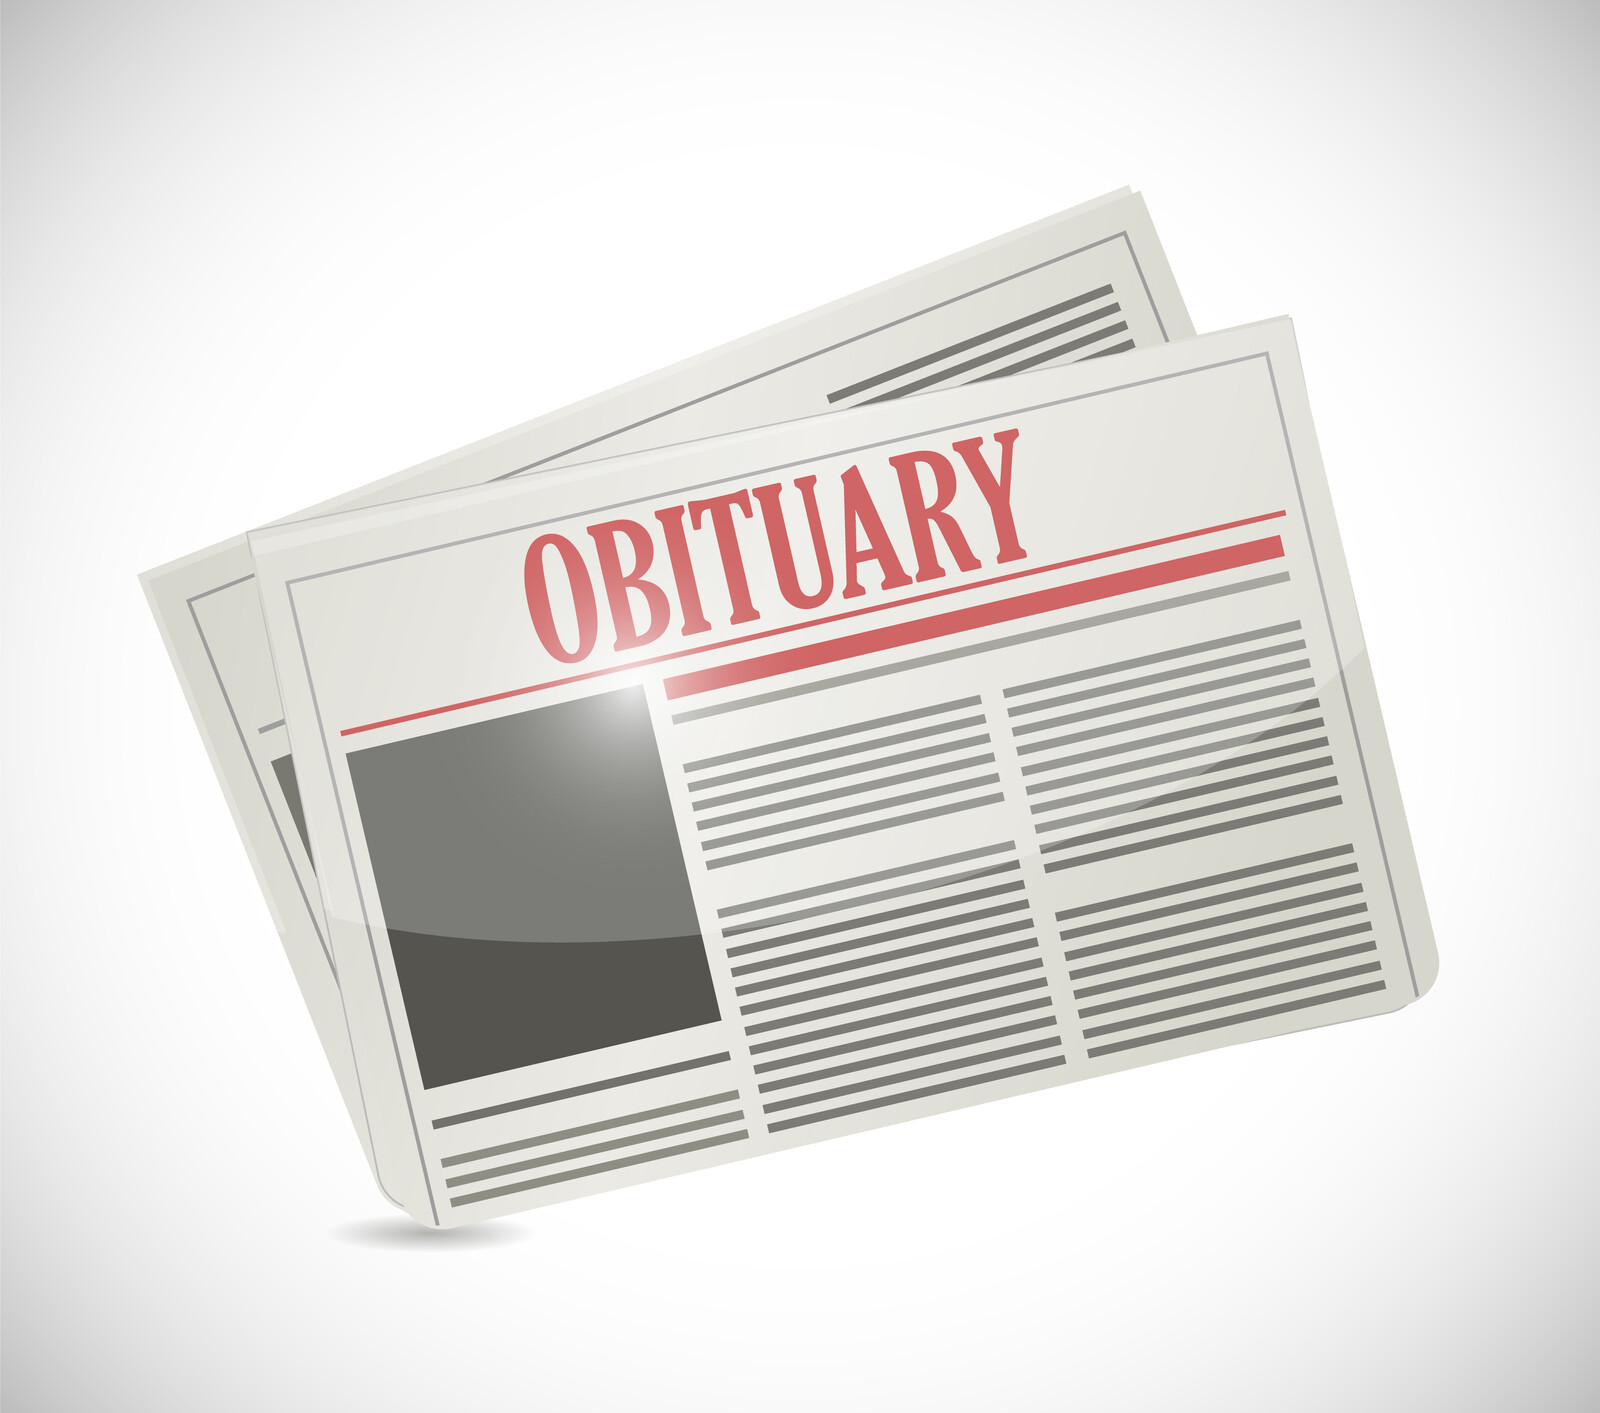 Illustration of a newspaper with Obituary as its header